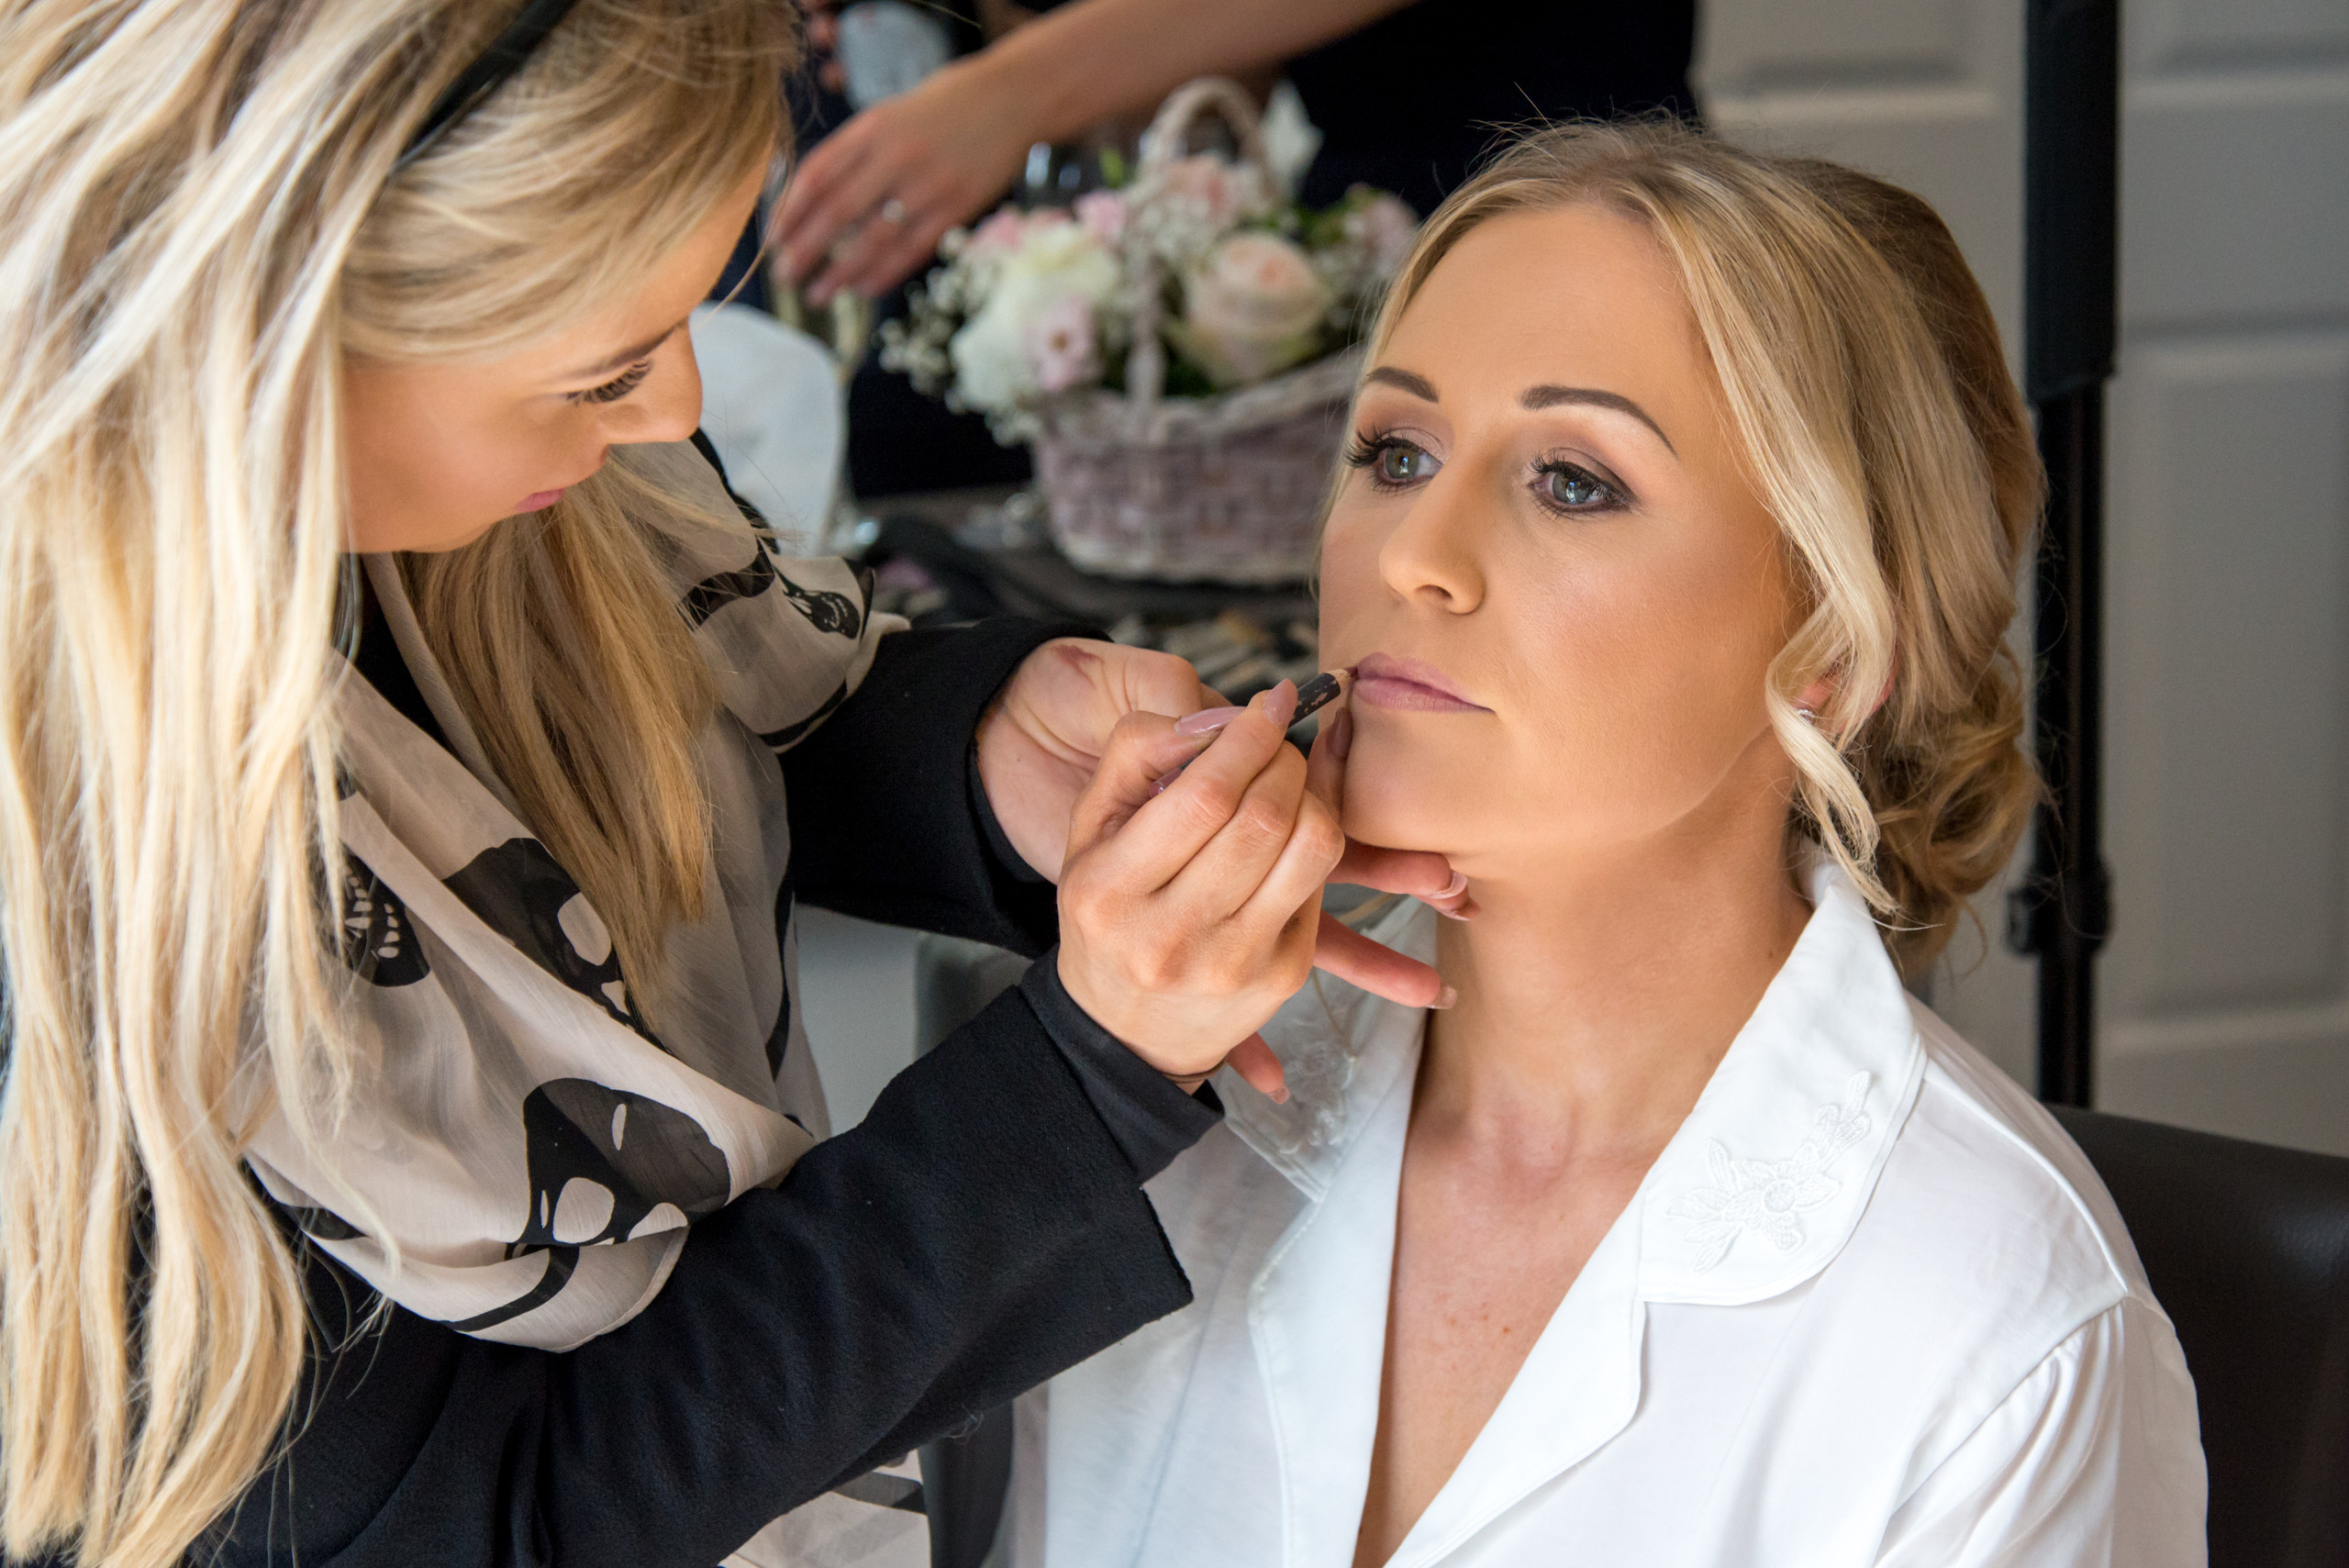 Natural candid photograph of bridal preparations of bride and make up artist applying lip gloss on morning of wedding day